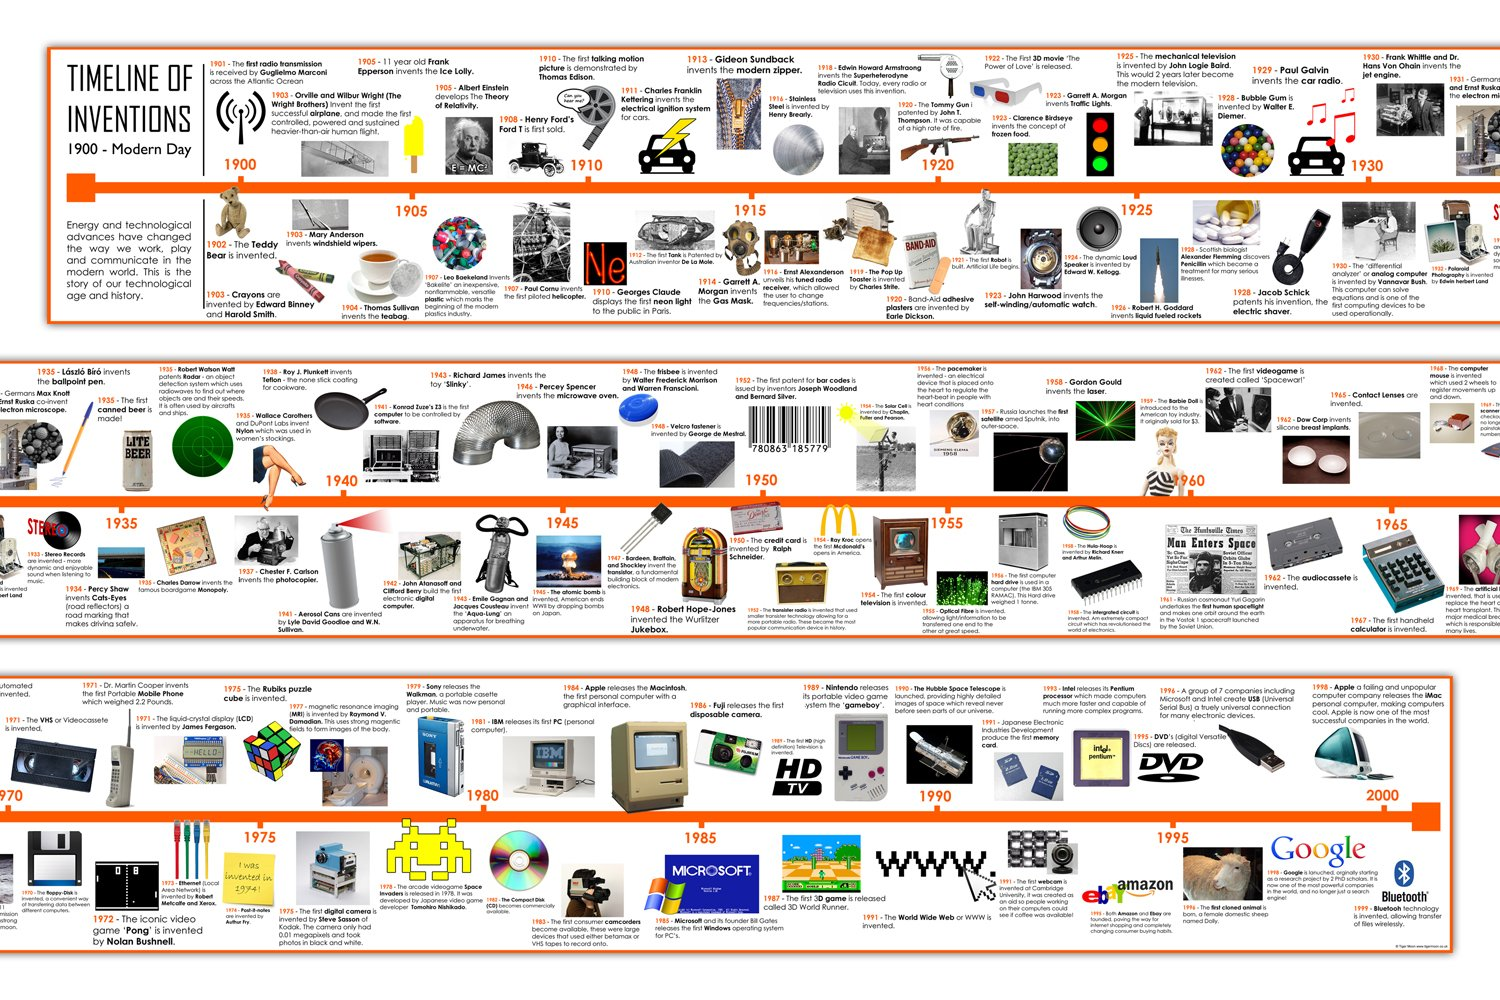 Timeline of 20th century inventions and technology printed on timeline of 20th century inventions and technology printed on vinyl 30 x 480 cm amazon office products gamestrikefo Image collections